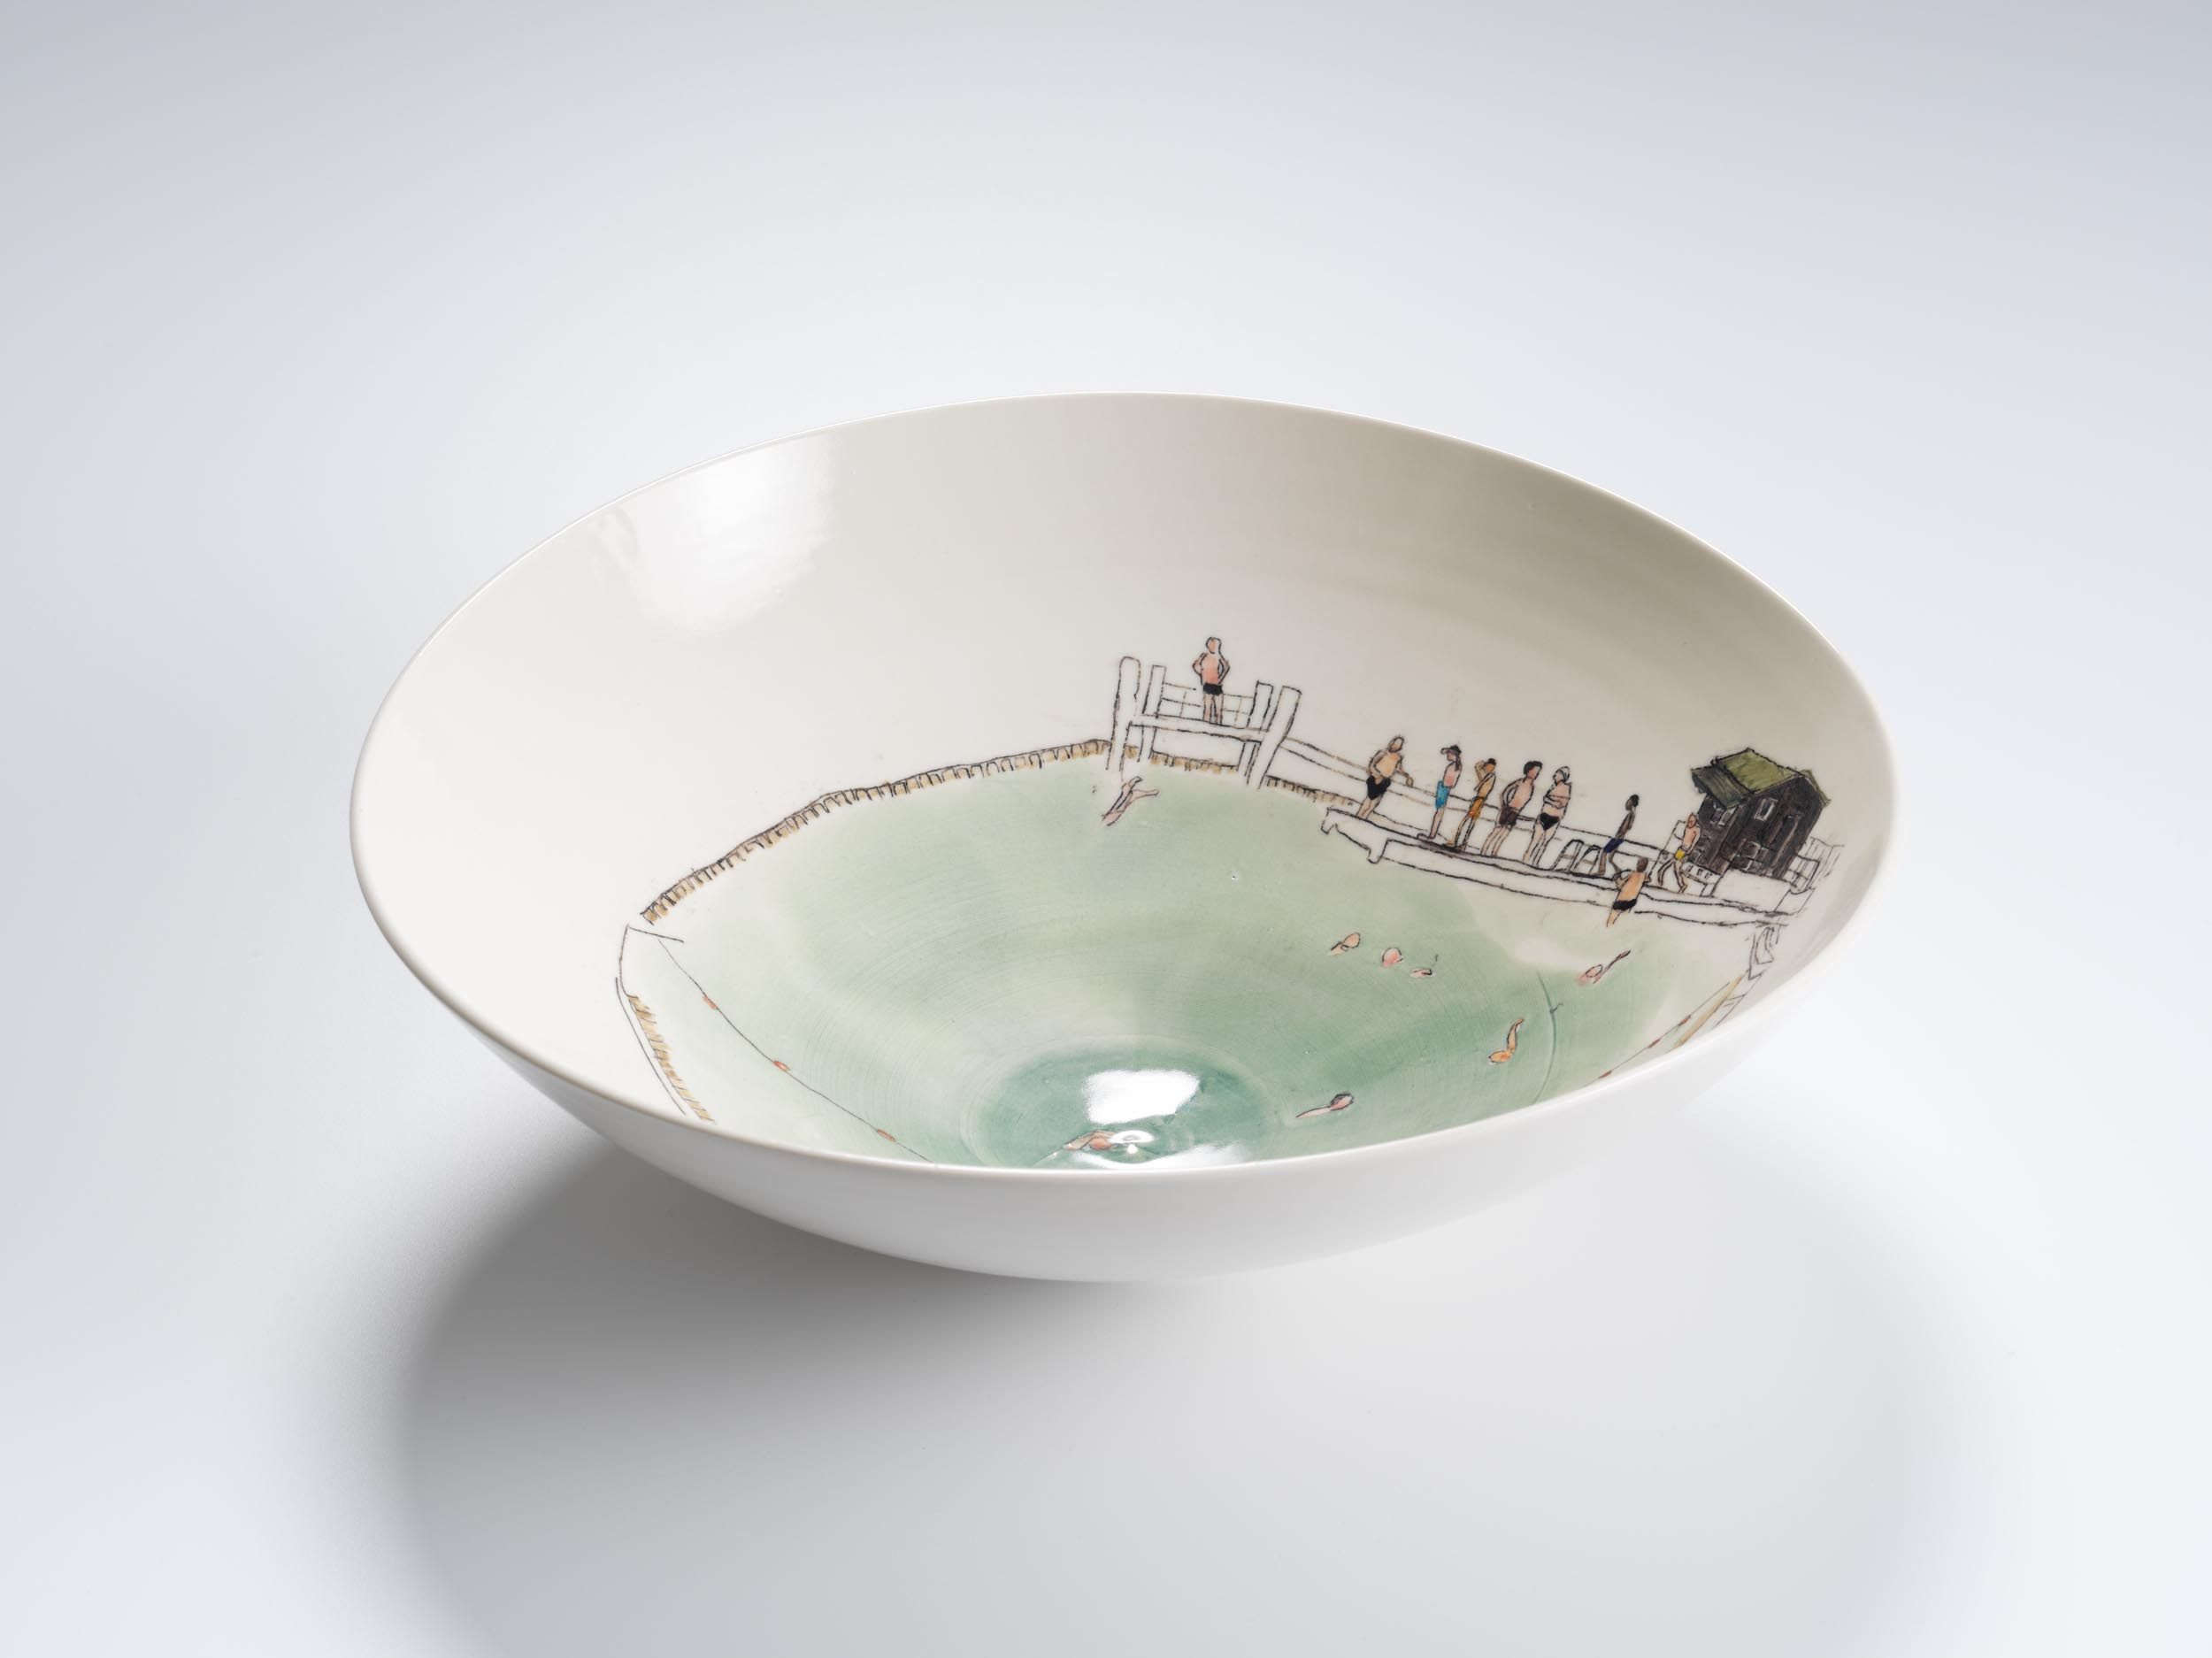 Men's Pond at Hampstead, 2018, wheel-thrown and hand-painted porcelain, 35cm diameter